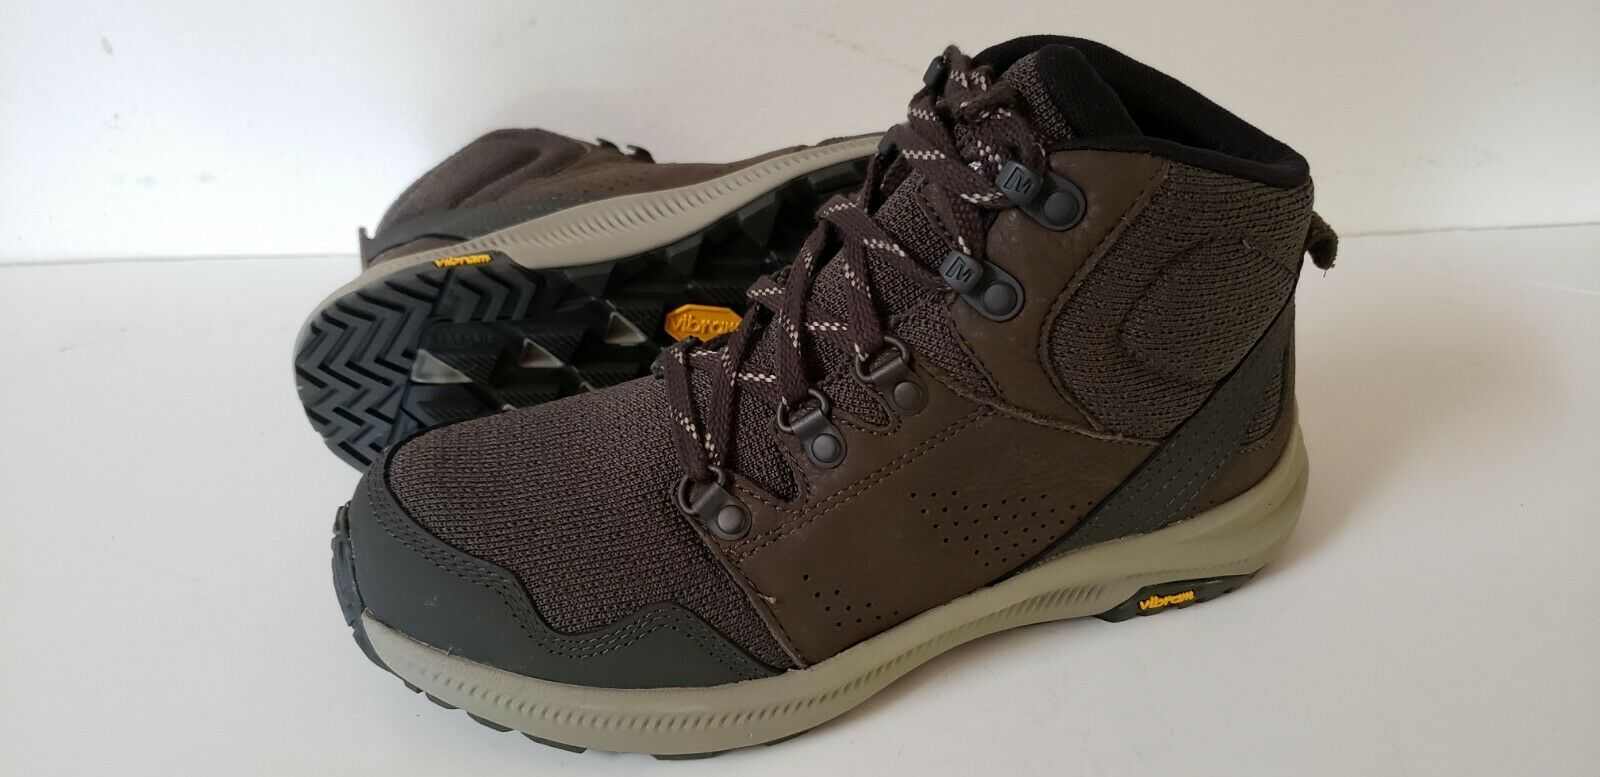 MW70 New Merrell Ontario Mid Knit Ankle  Hiking Trail Vibram Boots Women 7 Brown  2018 latest